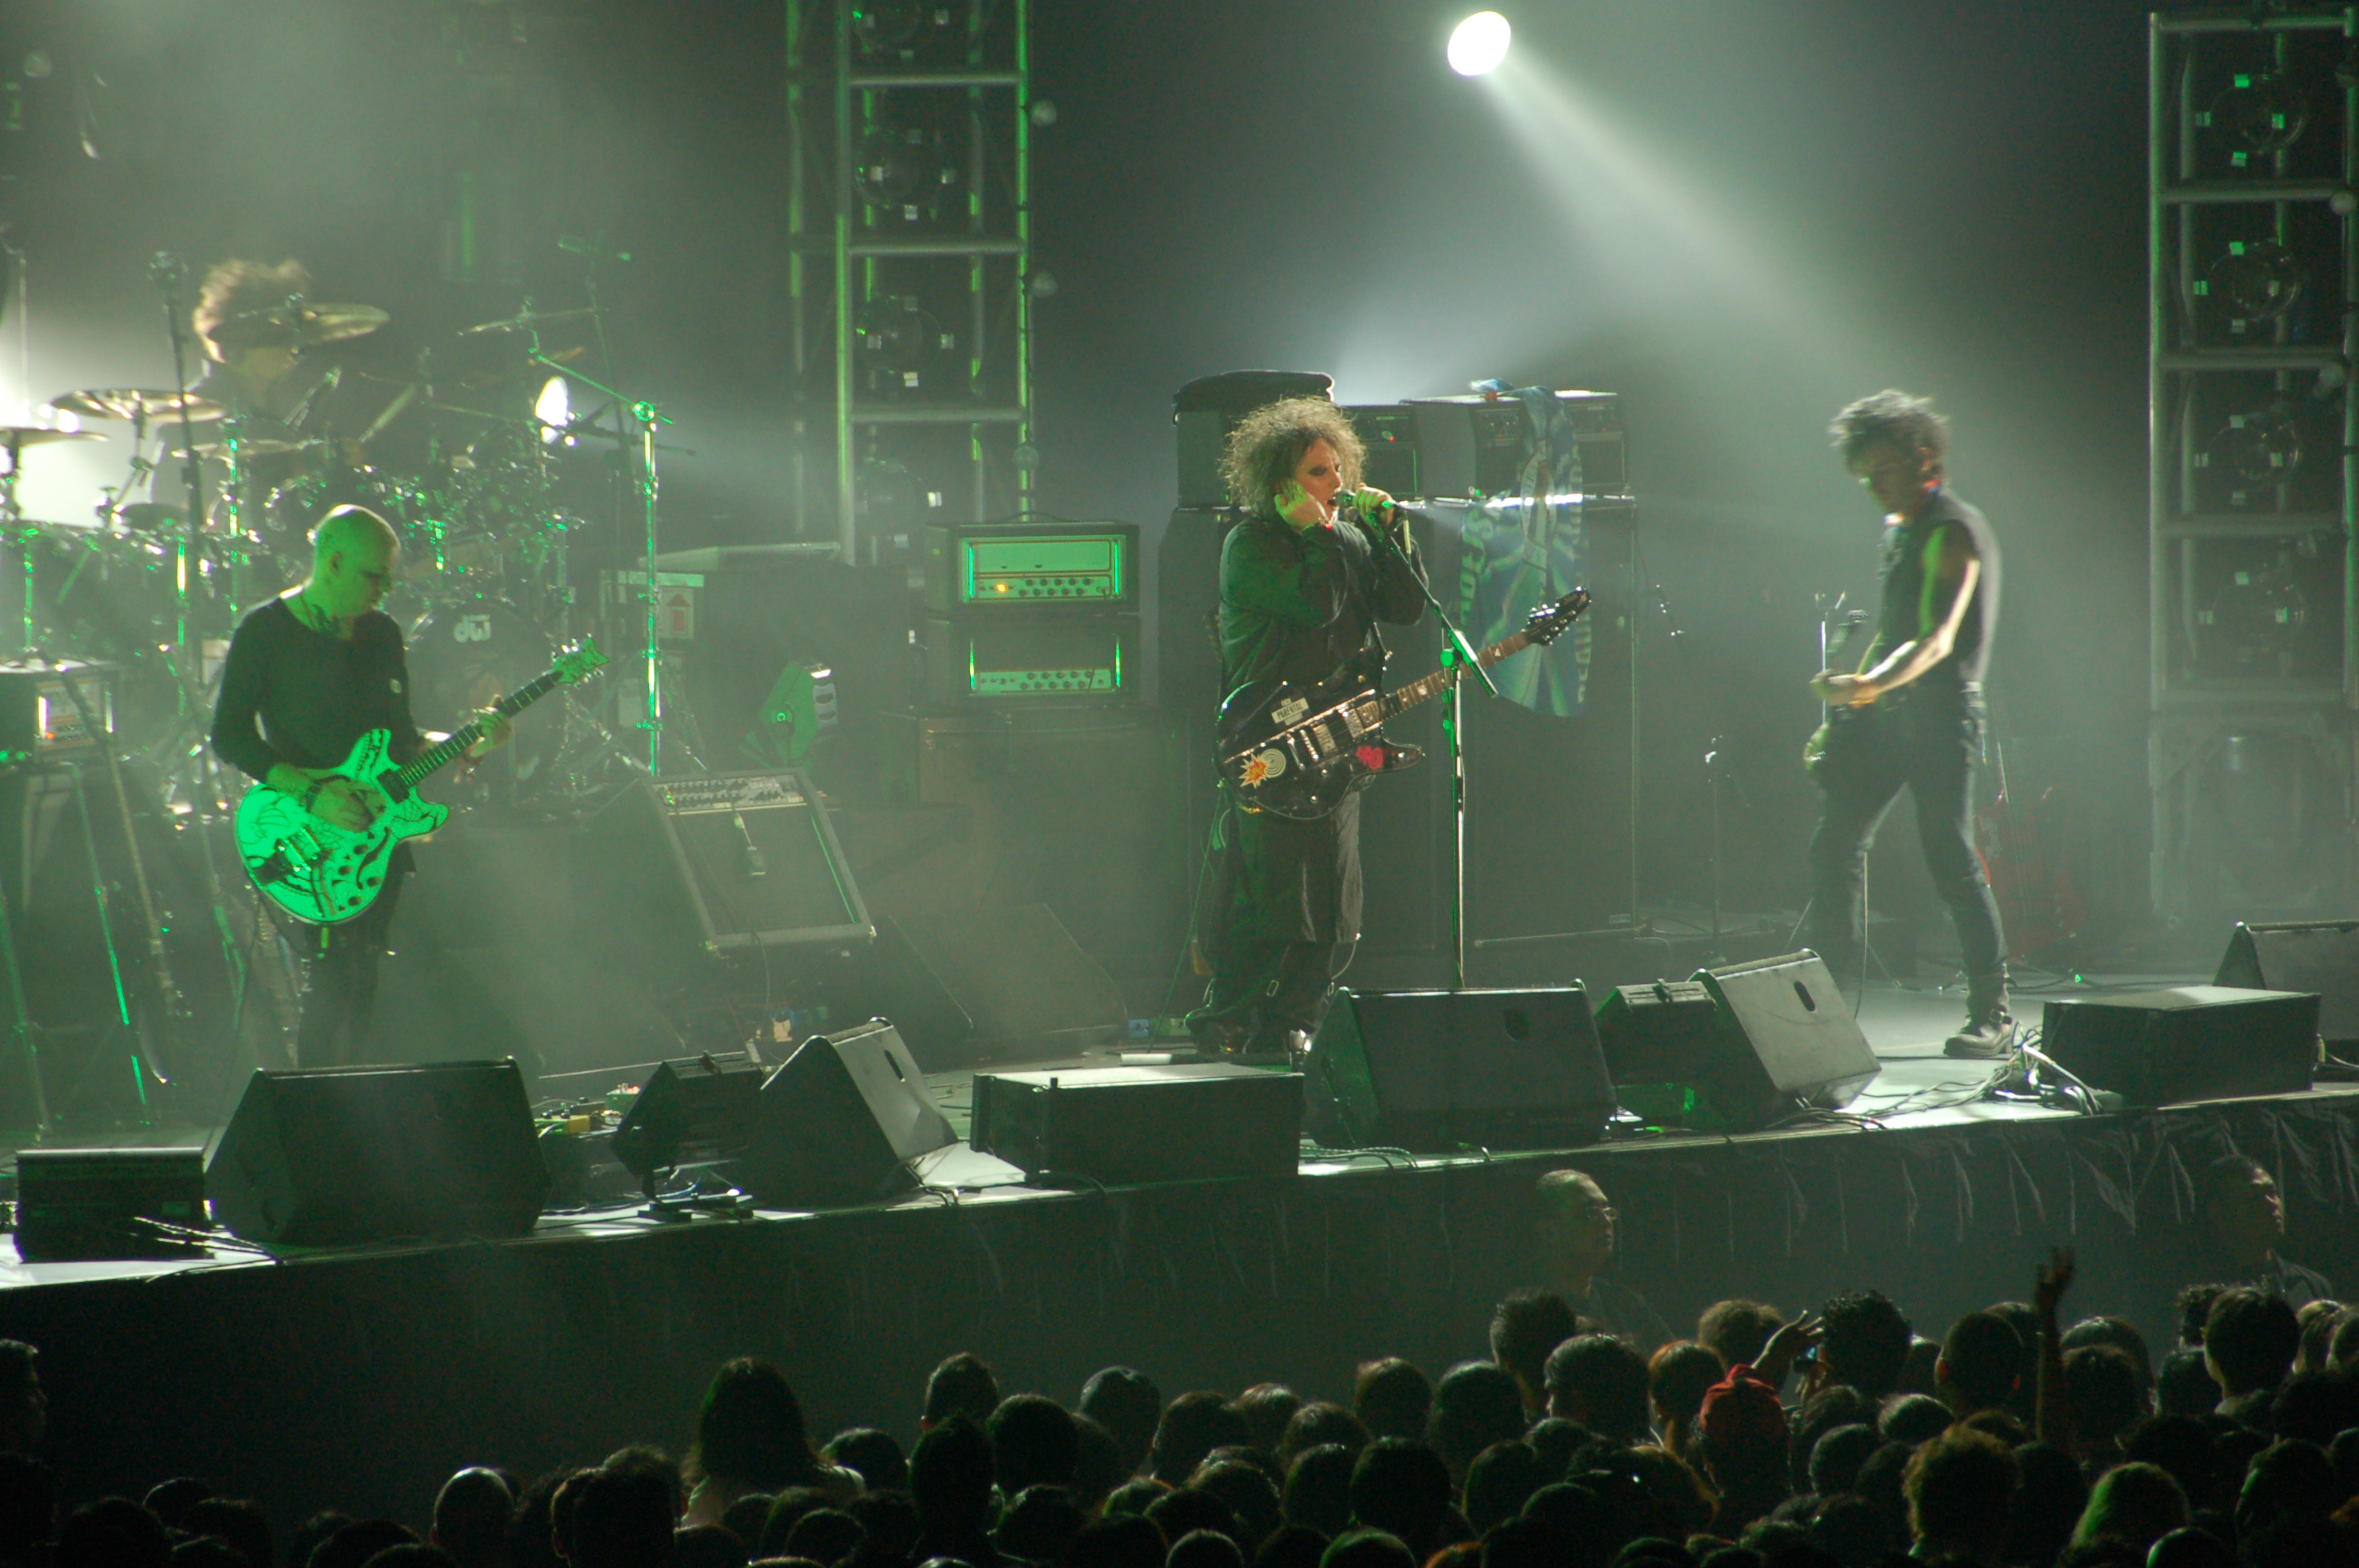 The Cure in Singapore Aug 1, 2007 - Source: Wikipedia